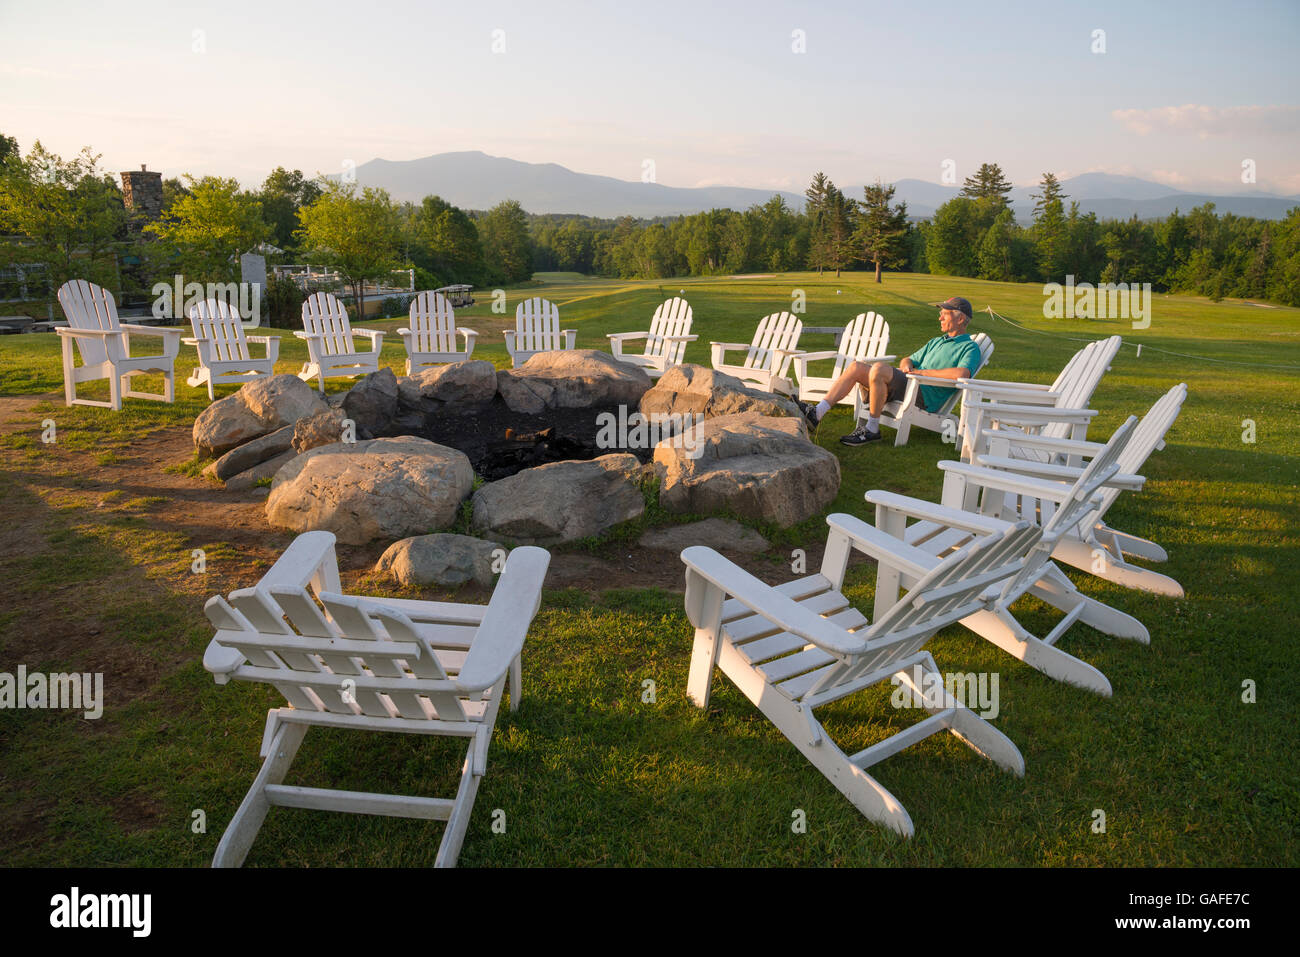 Chairs Around Fire Pit Adirondack Chairs Around Fire Pit Summer Mountain View